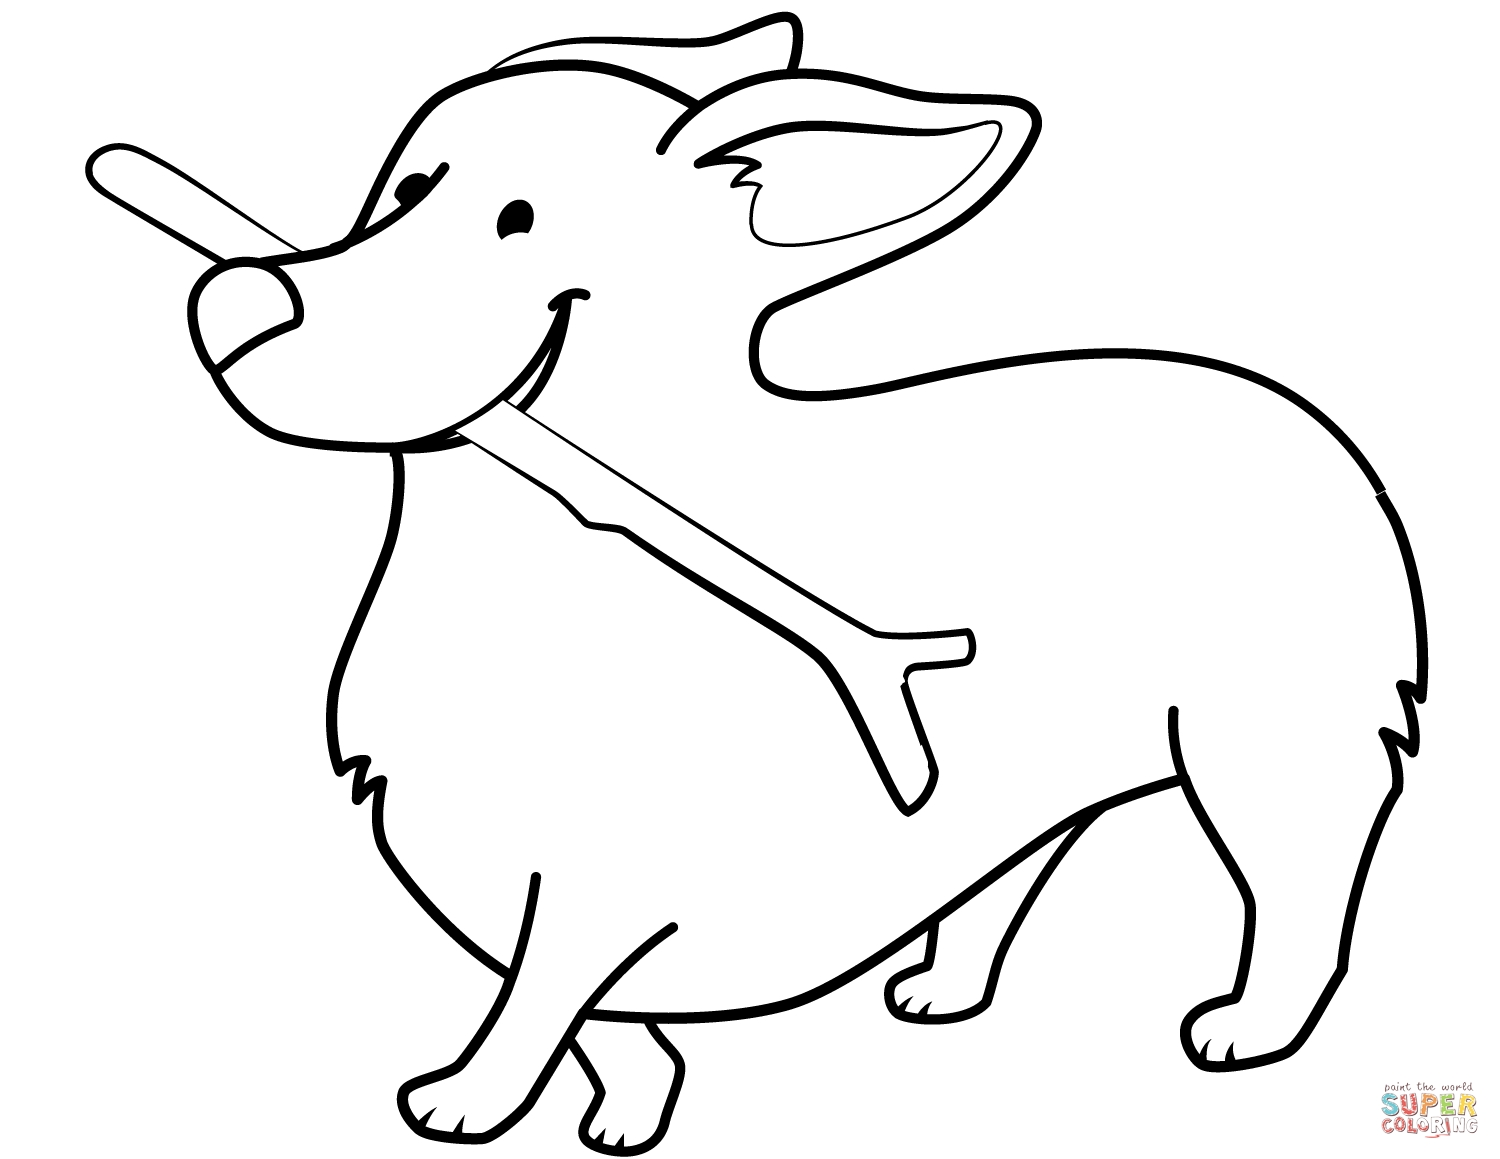 1500x1159 Funny Corgi Holding Stick Coloring Pages Download Coloring